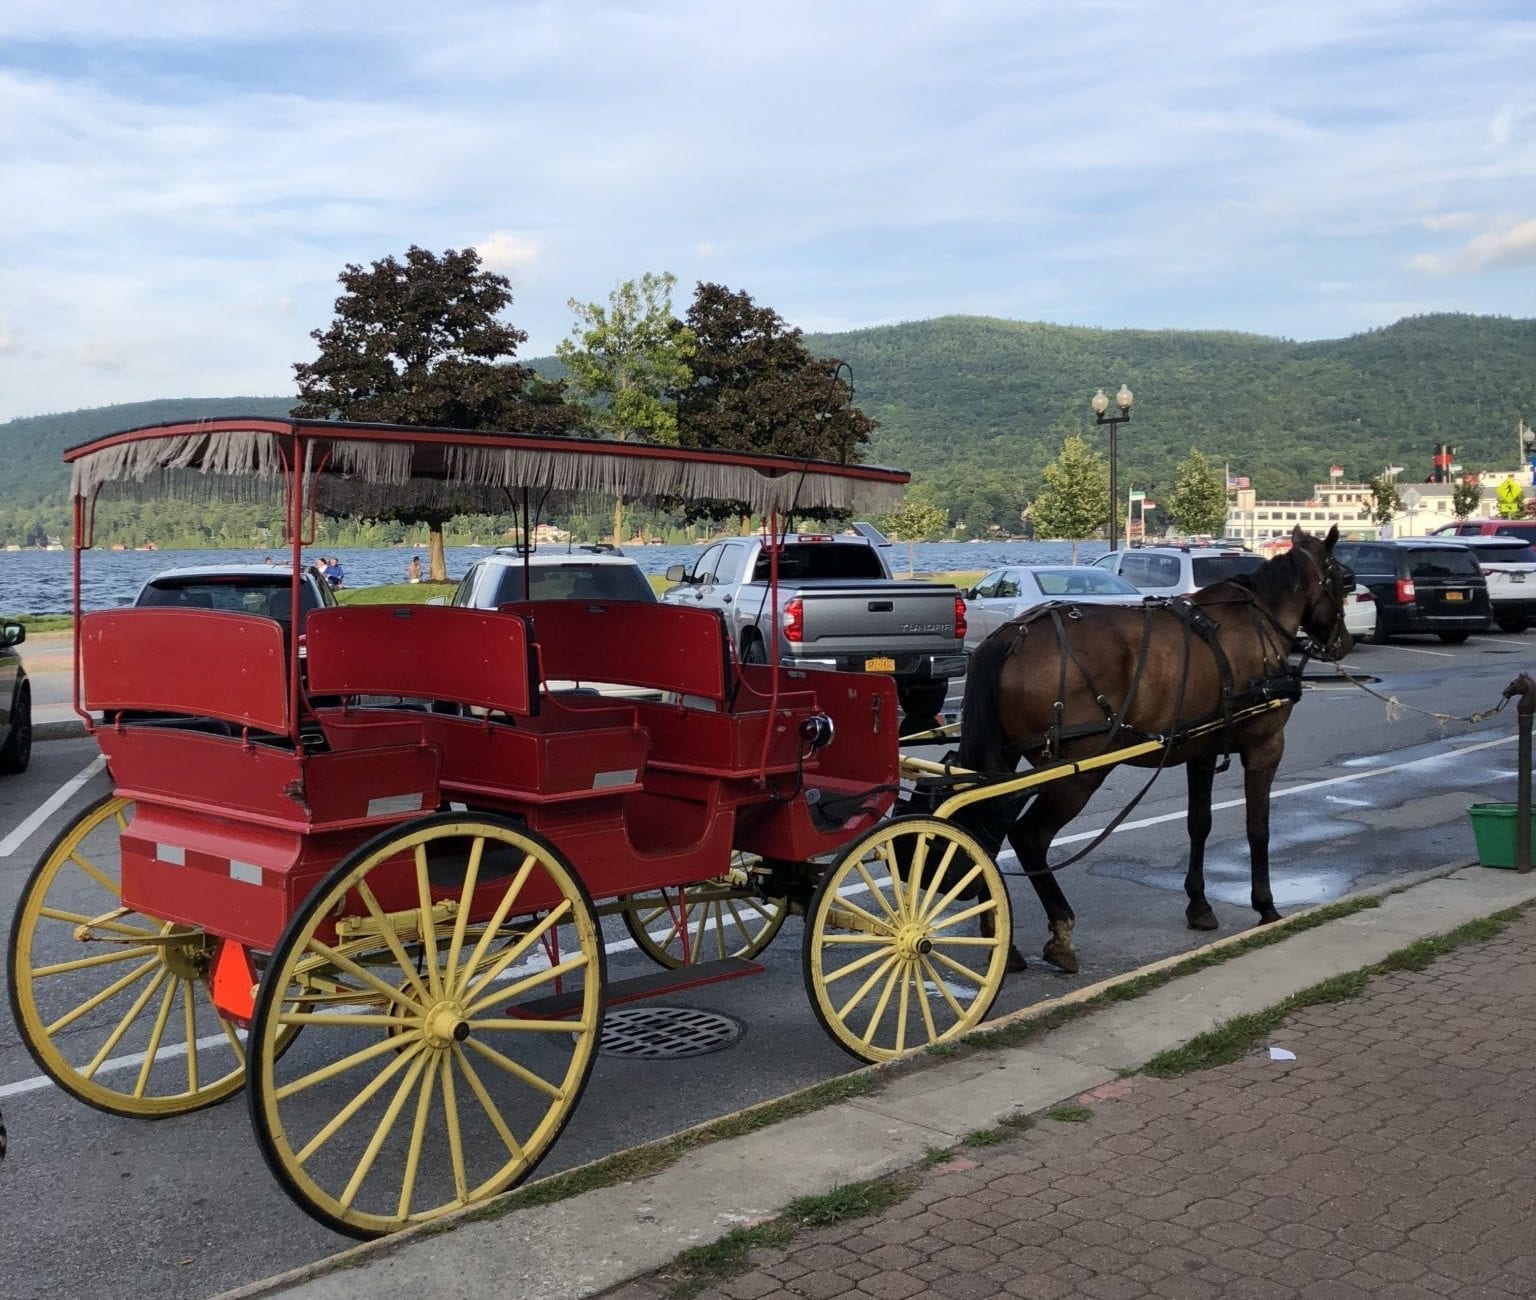 Take a Carriage Ride with your sweetheart Lakeside!